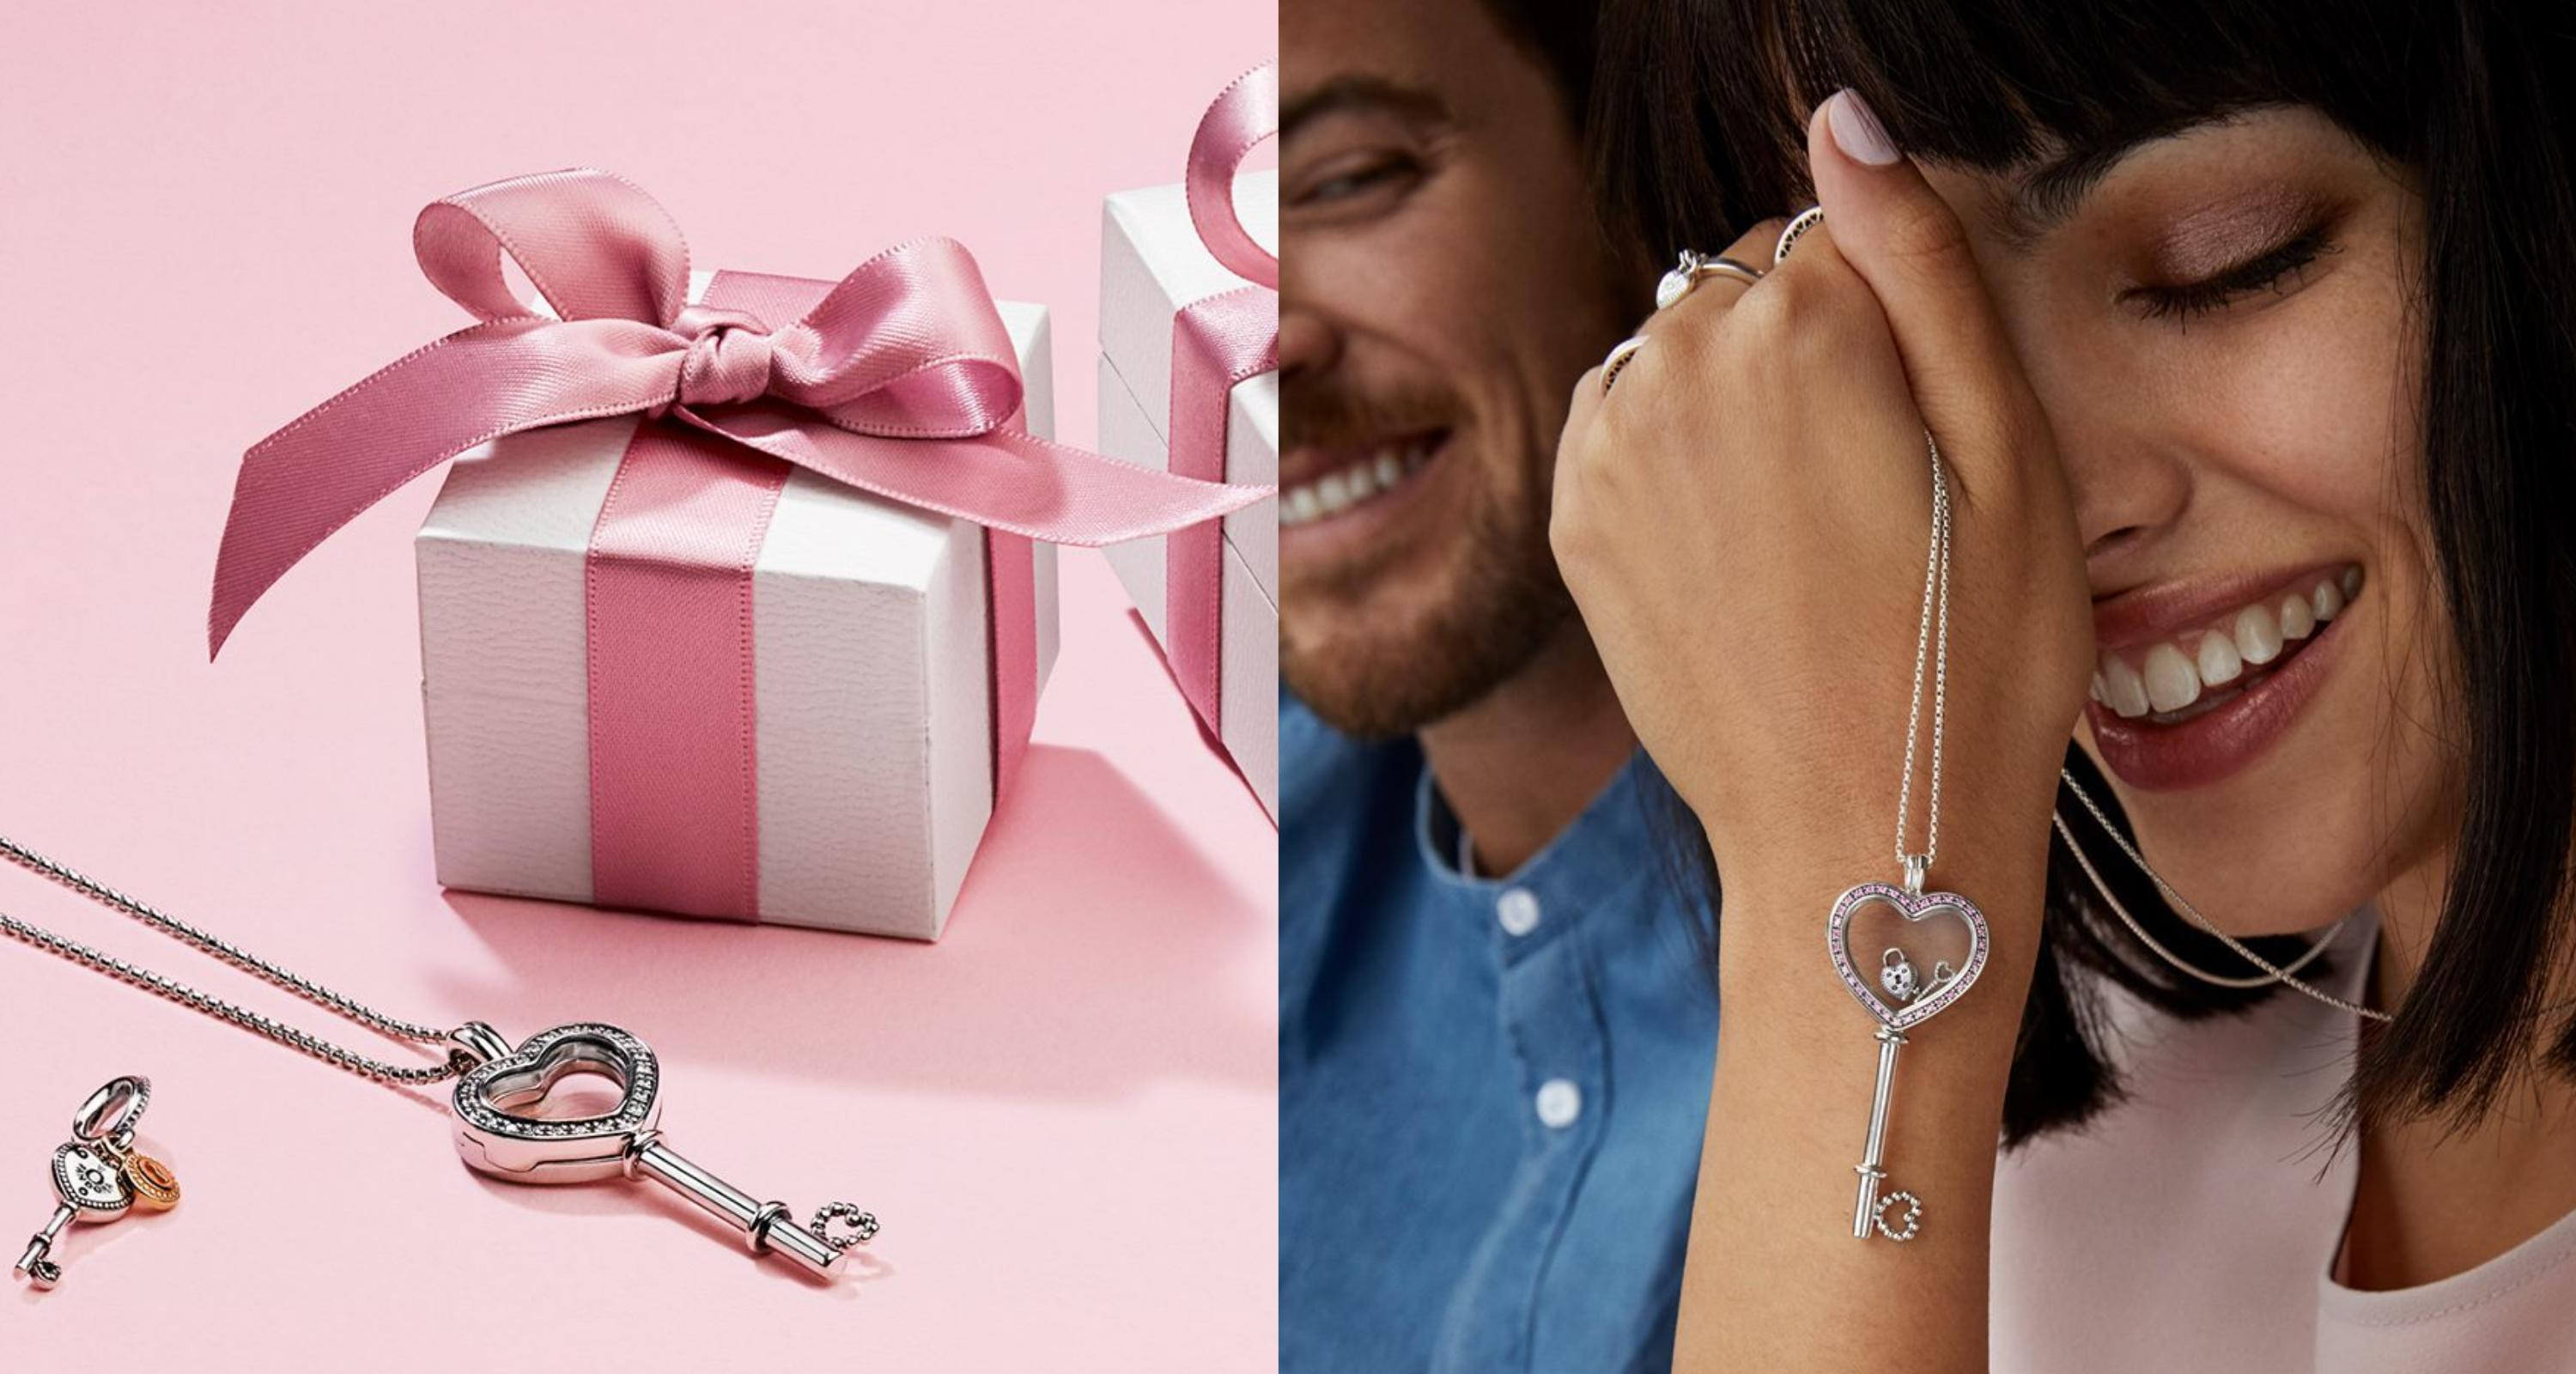 Surprise your loved ones with this amazing jewelry. Heart Key Locket is available in medium (P8,450) and large (P9,650), and the Key to My Heart pendant charm is priced at P4,550.